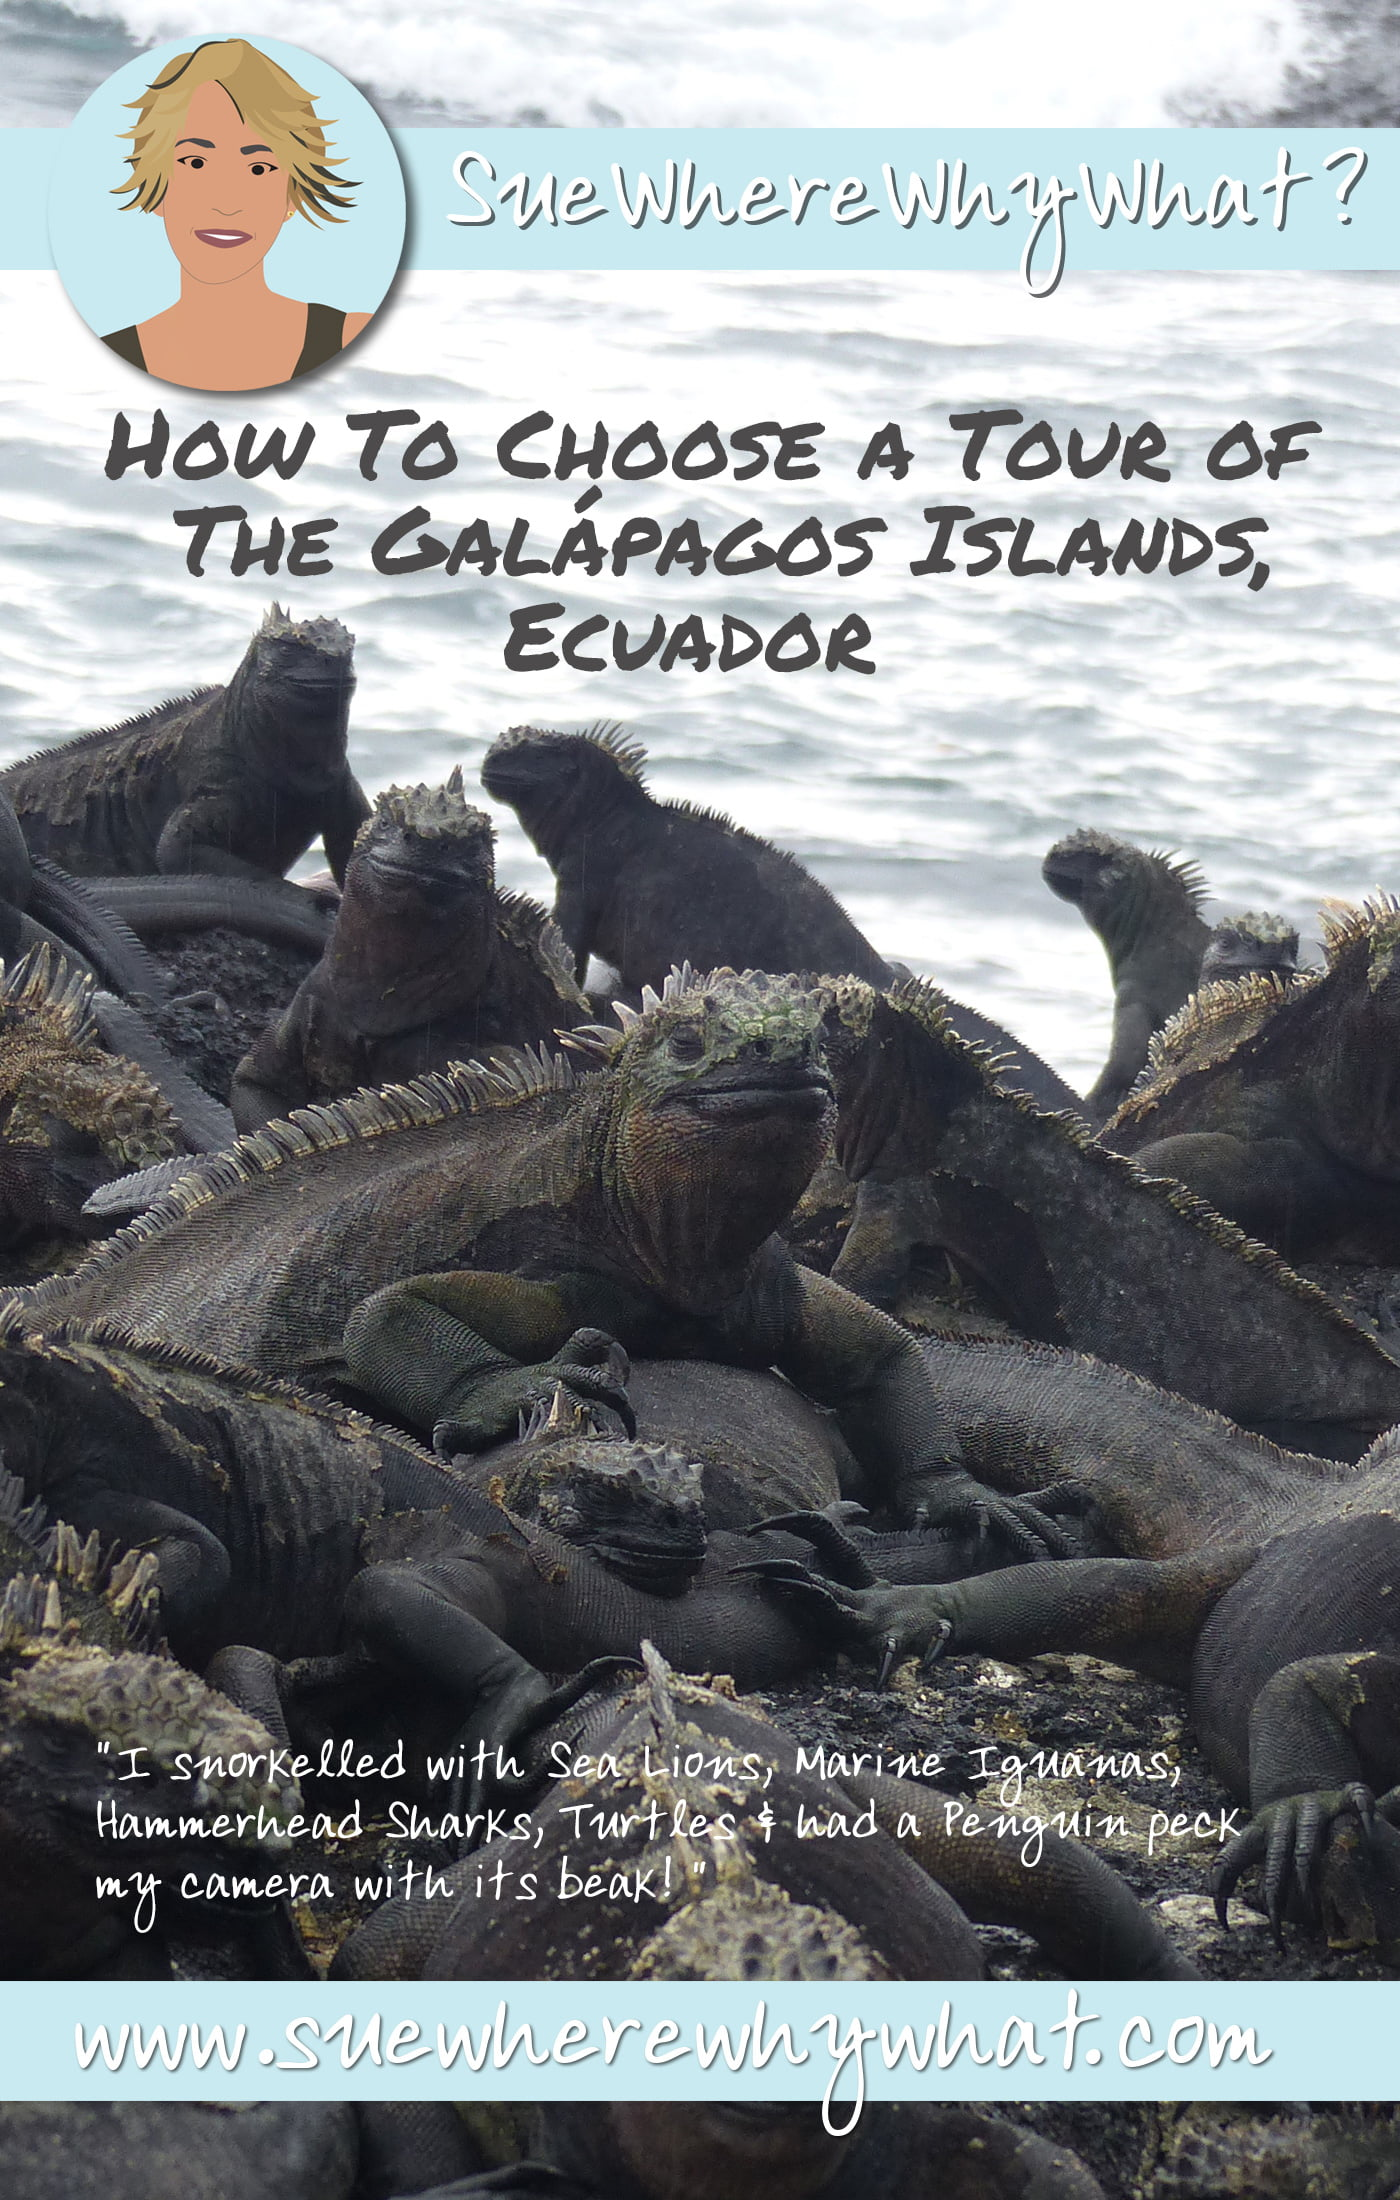 What you need to consider when looking to visit the Galápagos Islands in Ecuador. Includes advice on When to Go, Where to Go, How Long For, How Much It Costs, What To Take, What to Expect & What Rules you need to follow.